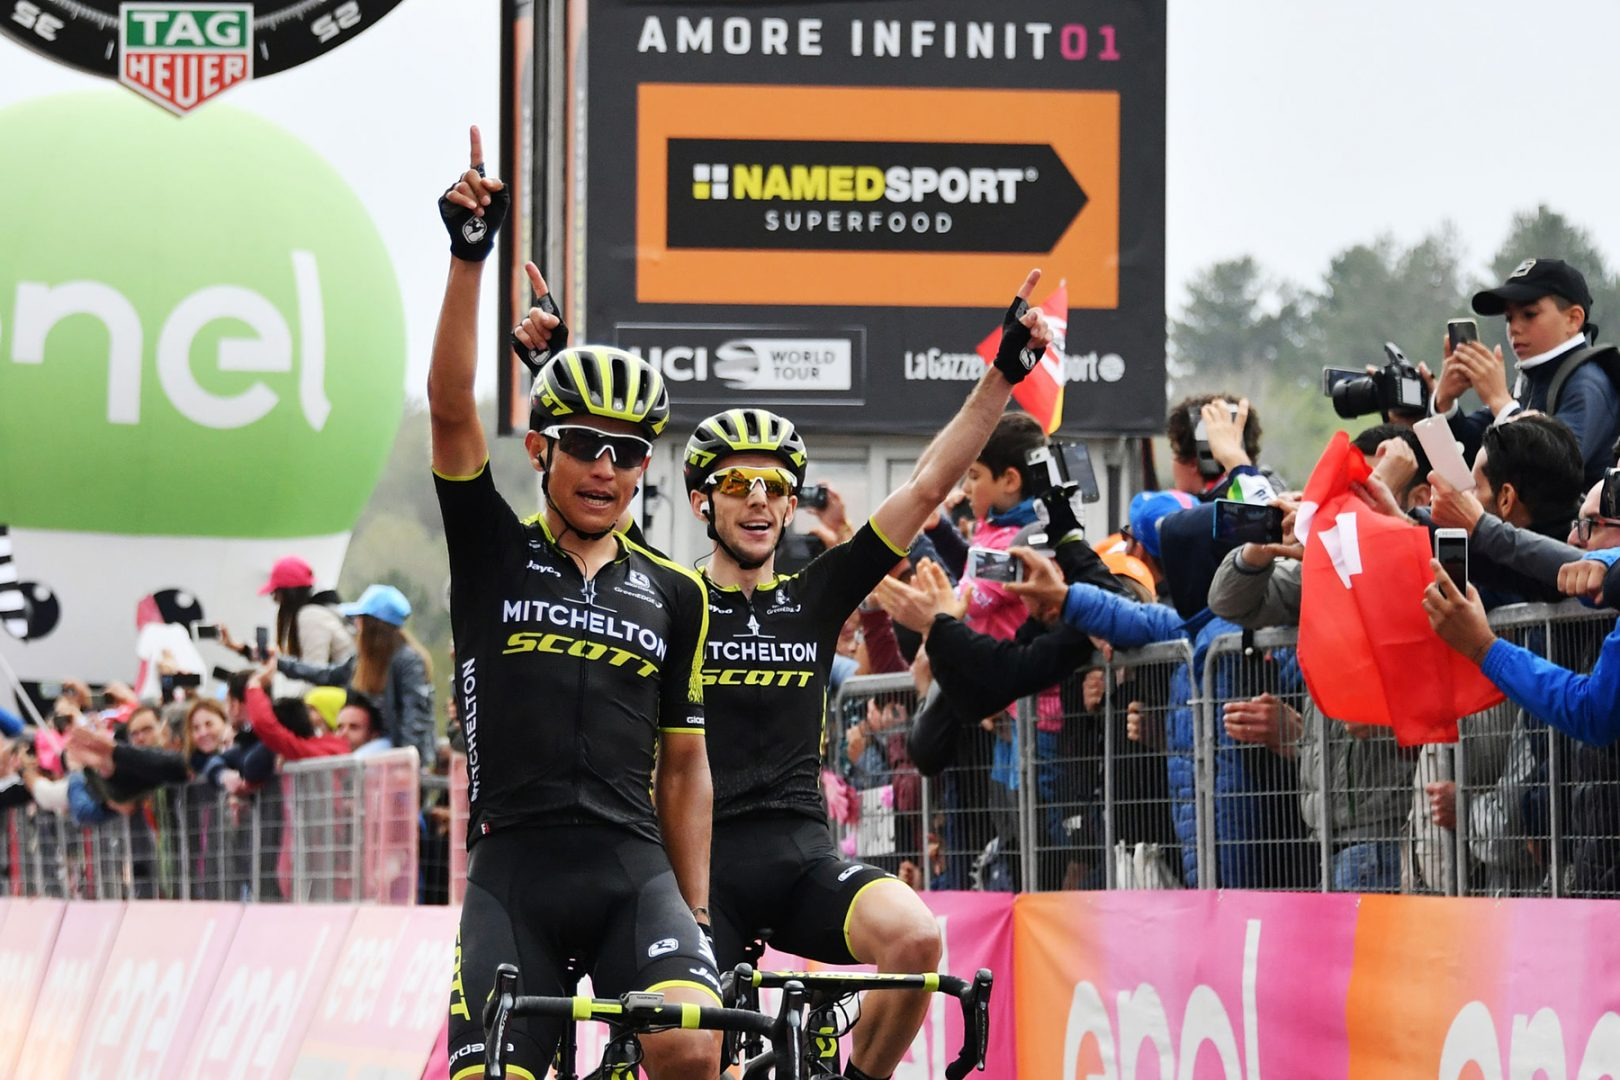 Foto Gian Mattia D'Alberto - LaPresse 10/05/2018 ETNA (Italia) Sport Ciclismo Giro d'Italia 2018 - edizione 101-  tappa 6 CALTANISSETTA - ETNA Nella foto: CHAVES RUBIO Jhoan Esteban (COL) (MITCHELTON - SCOTT) , vincitore di tappa davanti YATES Simon Philip (GBR) (MITCHELTON - SCOTT) maglia rosaPhoto Gian Mattia D'Alberto - LaPresse 2018-05-10  ETNA (Italy) Sport Cycling Giro d'Italia 2018 - 101th edition -  stage 6 CALTANISSETTA - ETNA In the pic: CHAVES RUBIO Jhoan Esteban (COL) (MITCHELTON - SCOTT) , winner of the stage in front of YATES Simon Philip (GBR) (MITCHELTON - SCOTT) , pink jersey